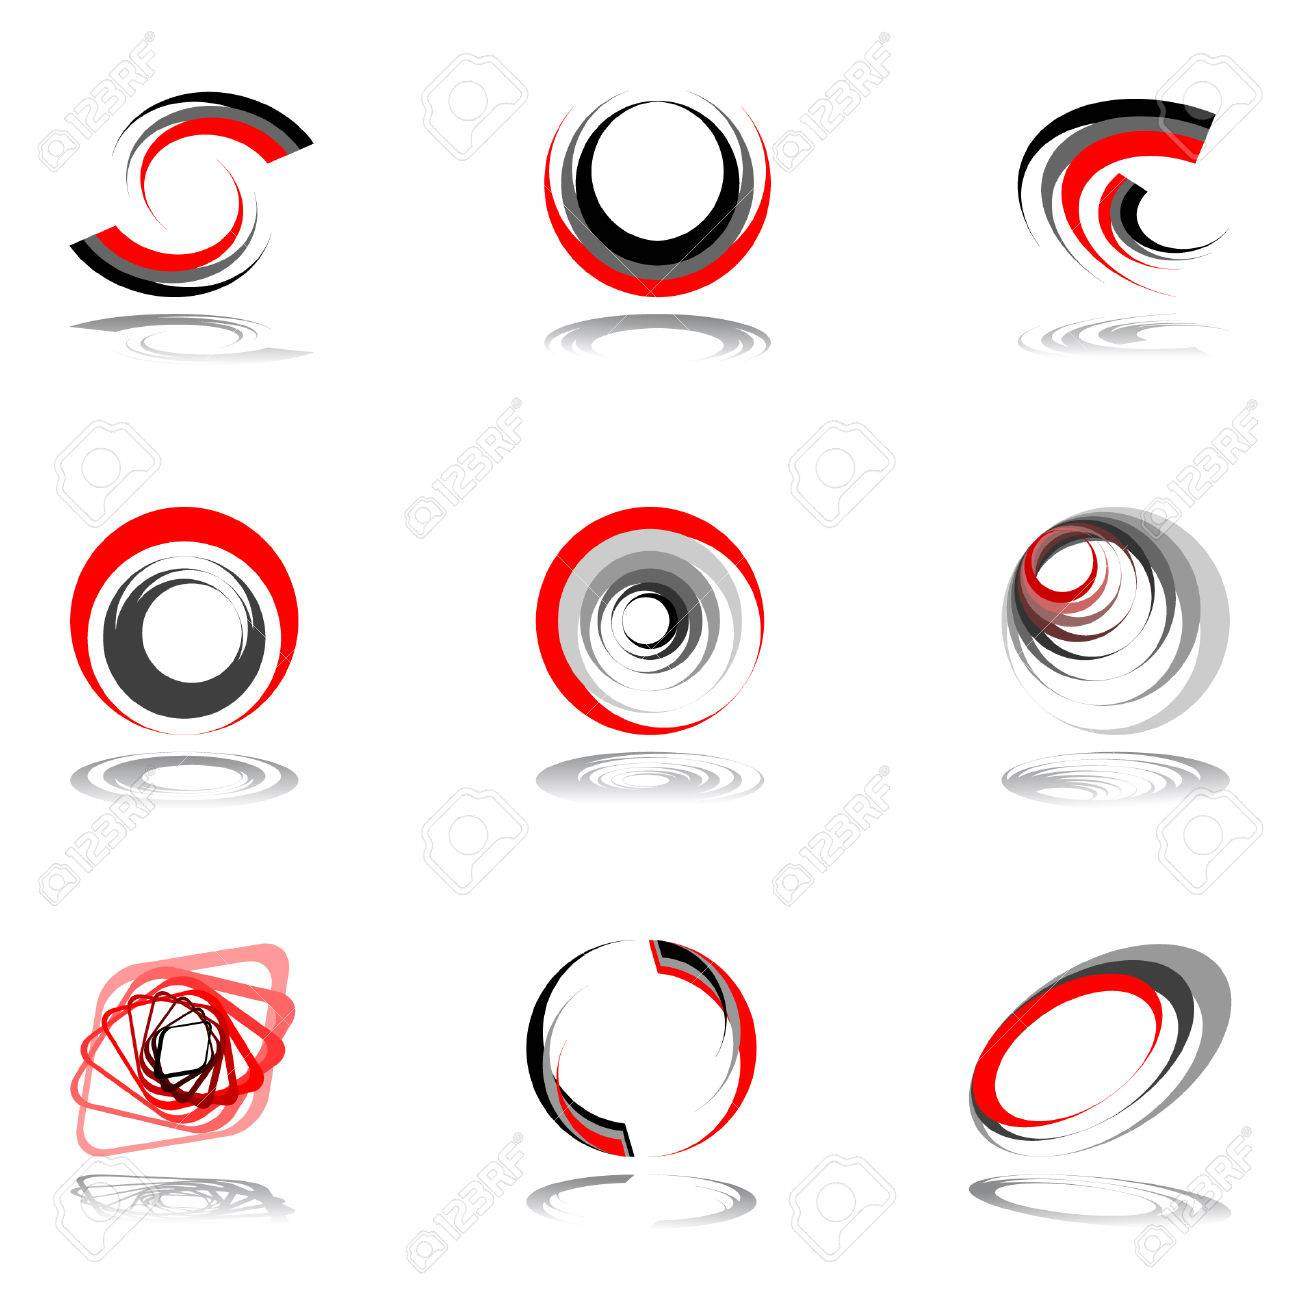 Design elements in red-grey colors. Vector illustration. Stock Vector - 7363452